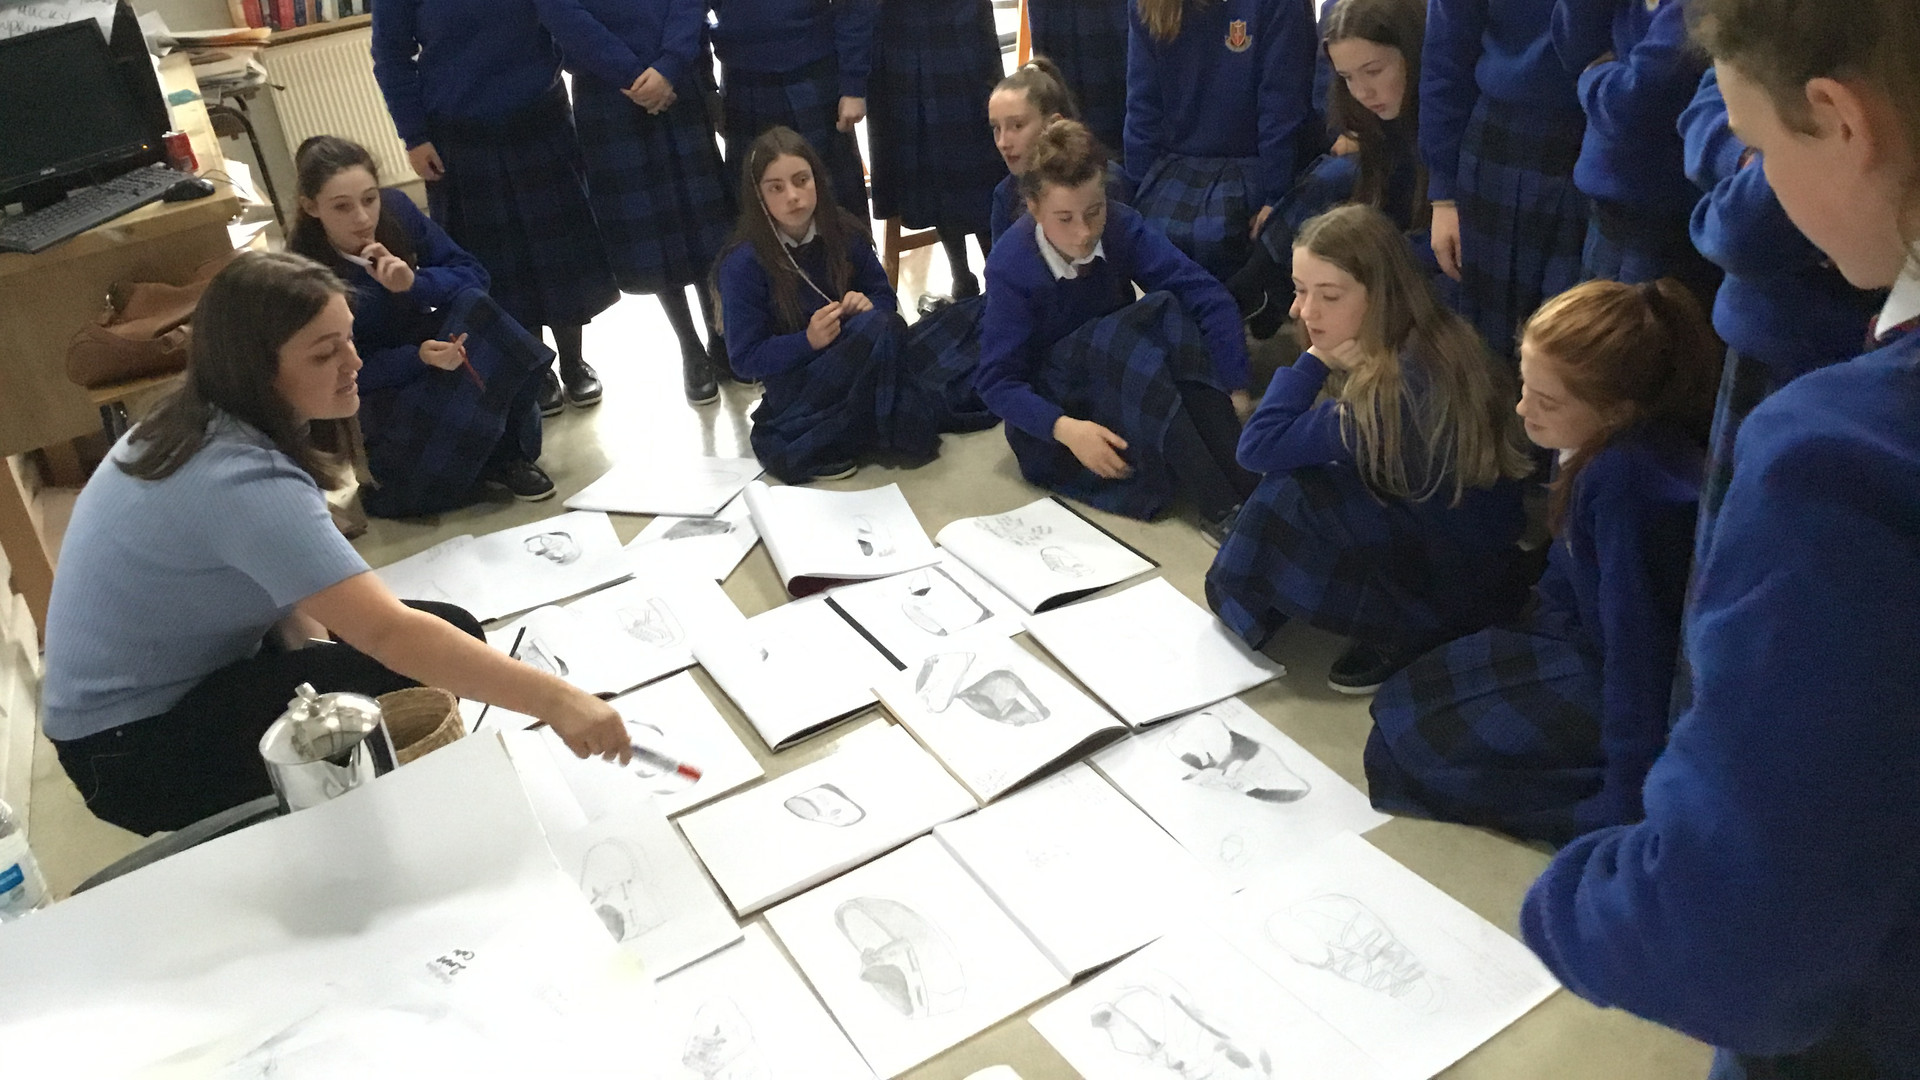 Assessment method_ Students engaging in